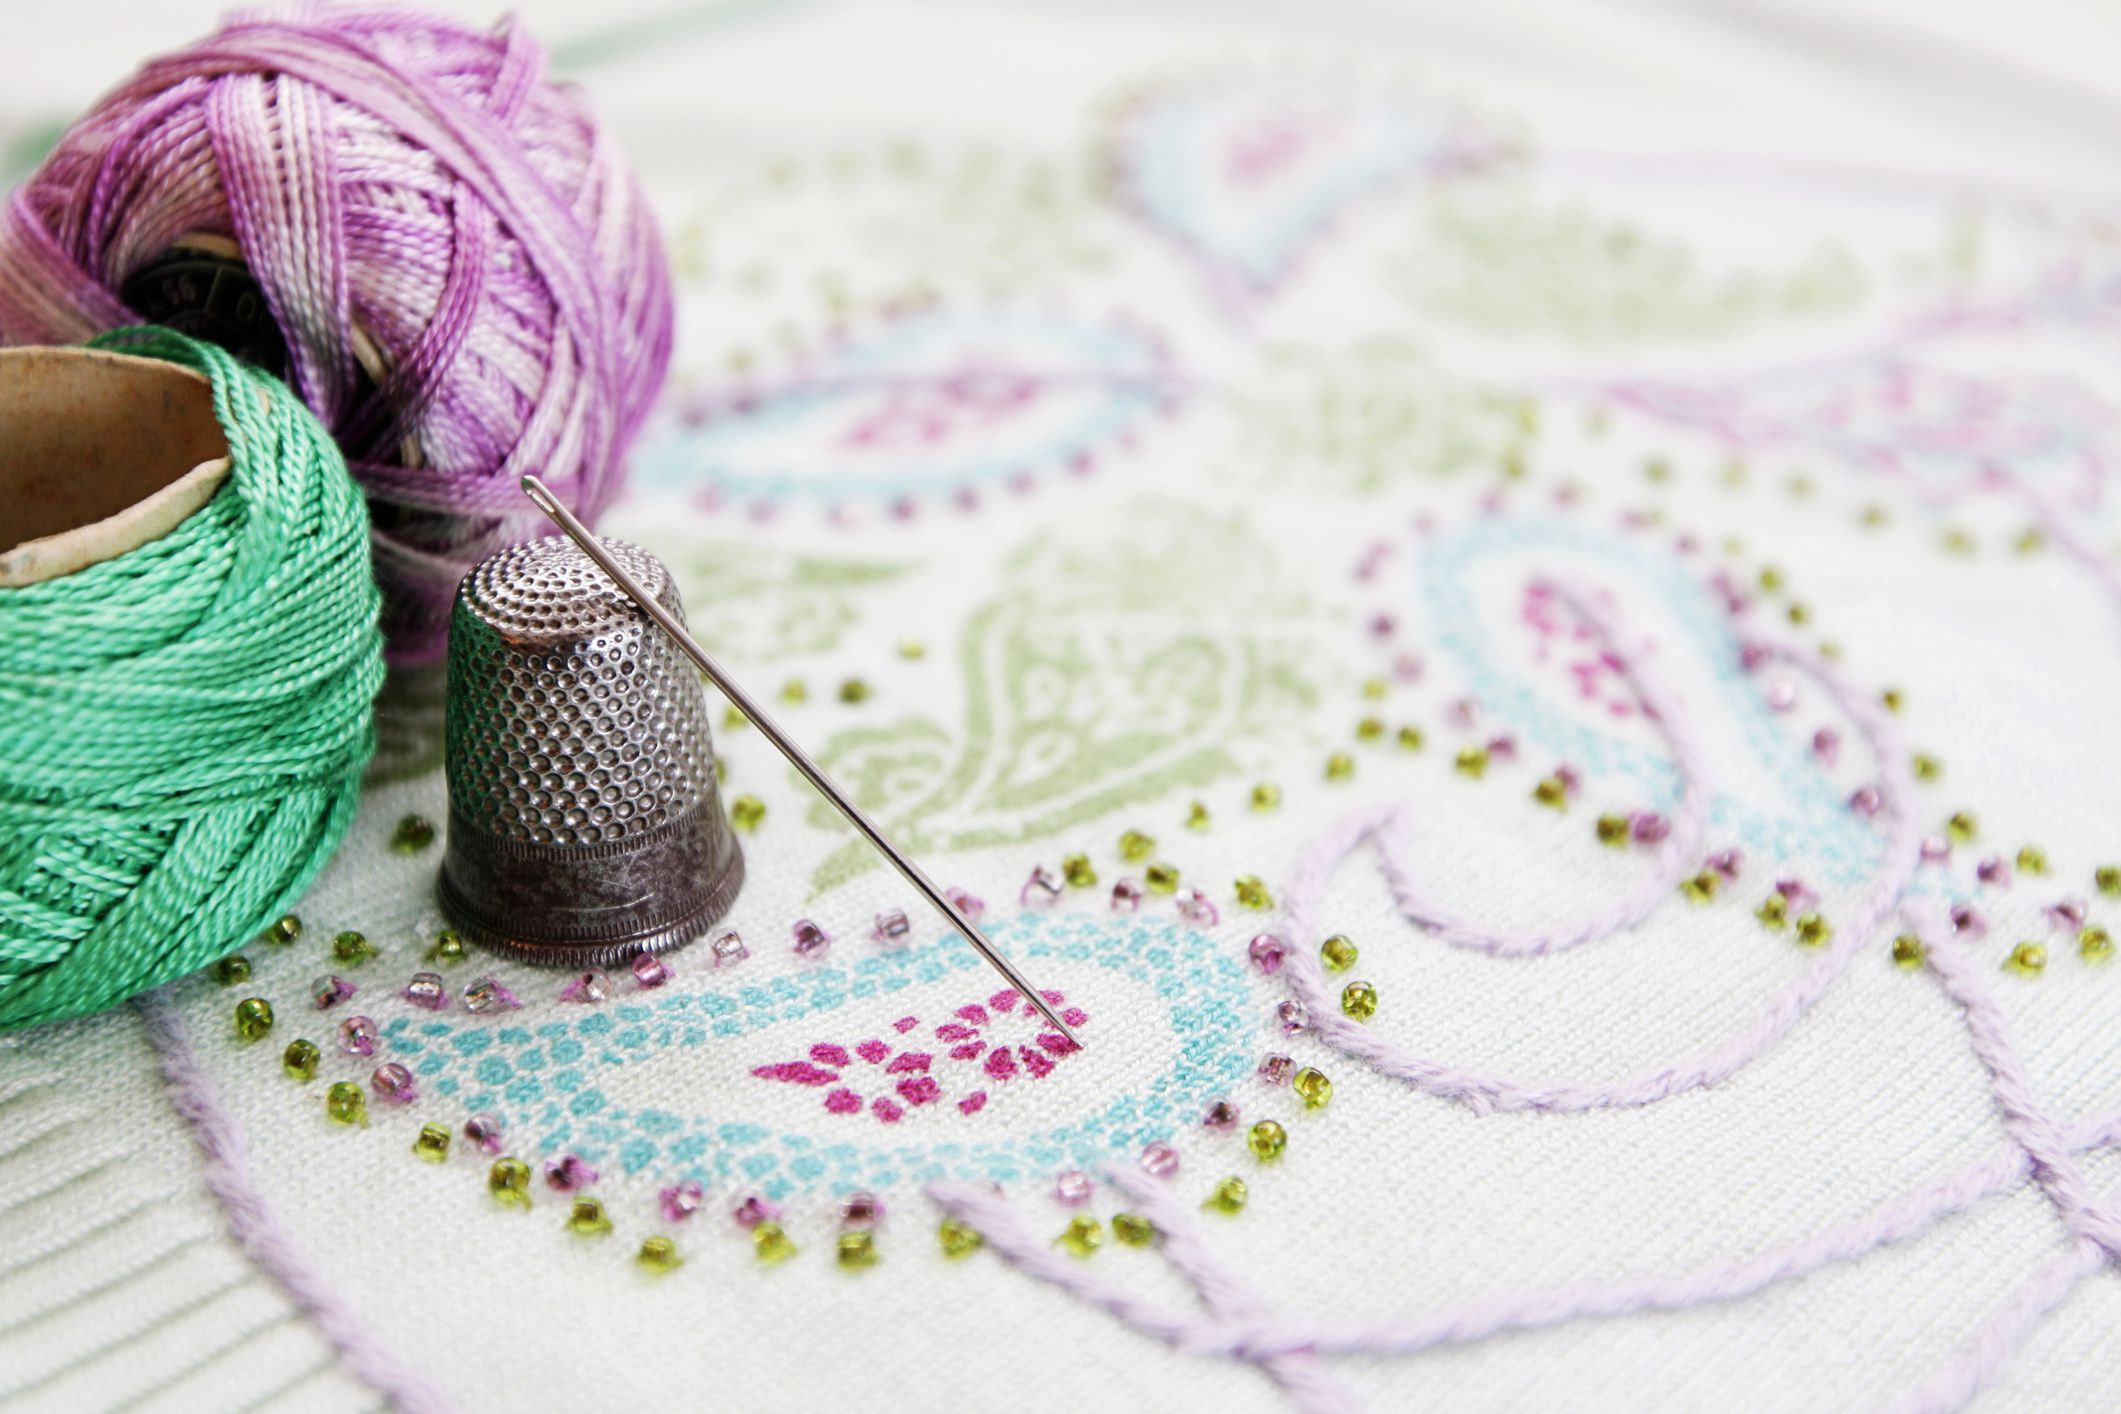 Learn Hand Embroidery With Helpful Stitch Instructions